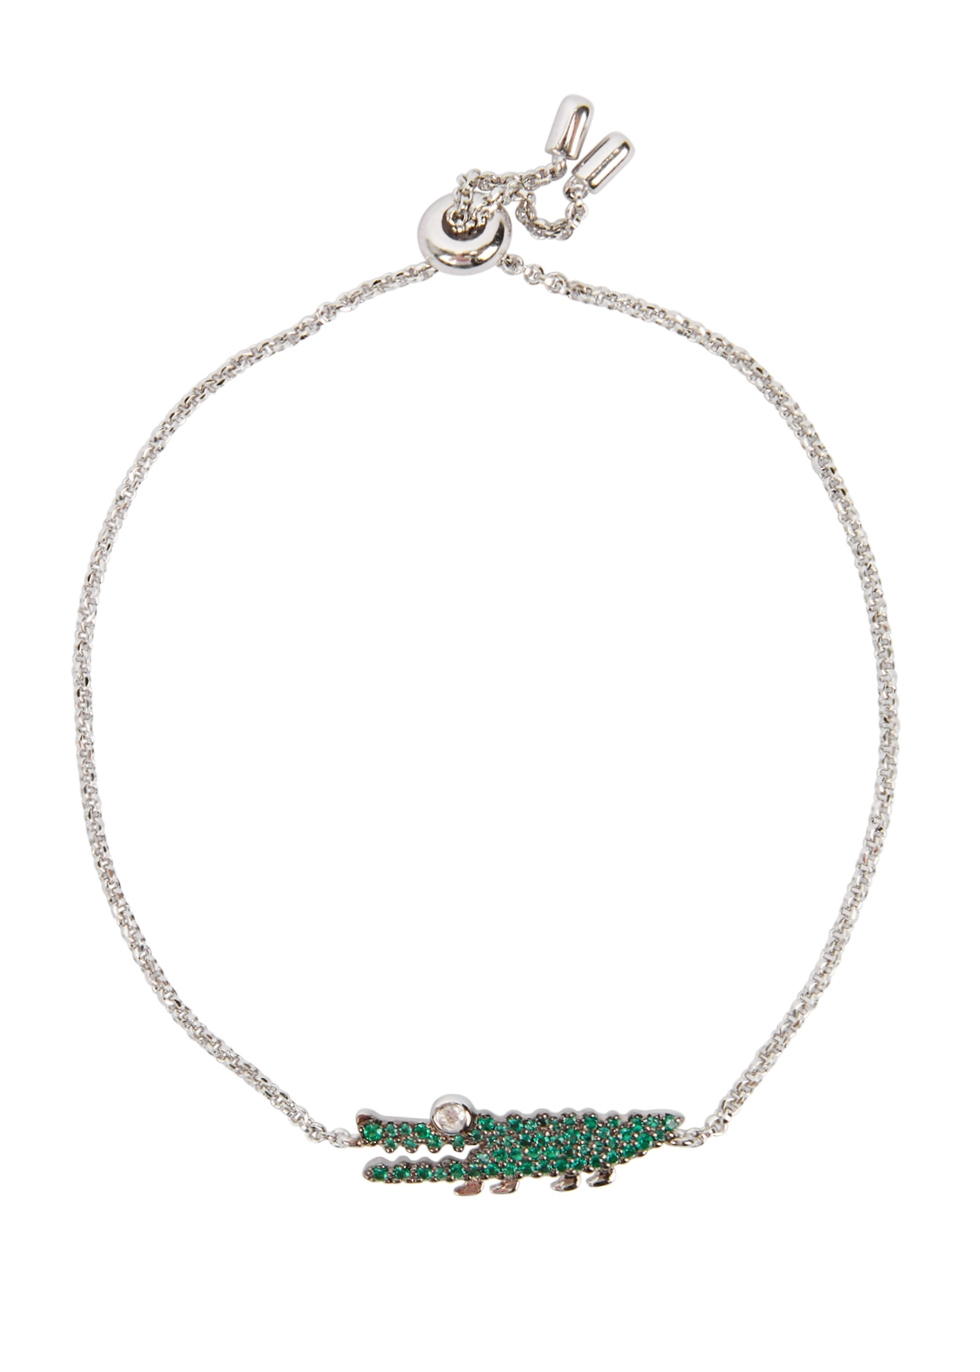 APM MONACO Crystal-Embellished Sterling Silver Bracelet in Green